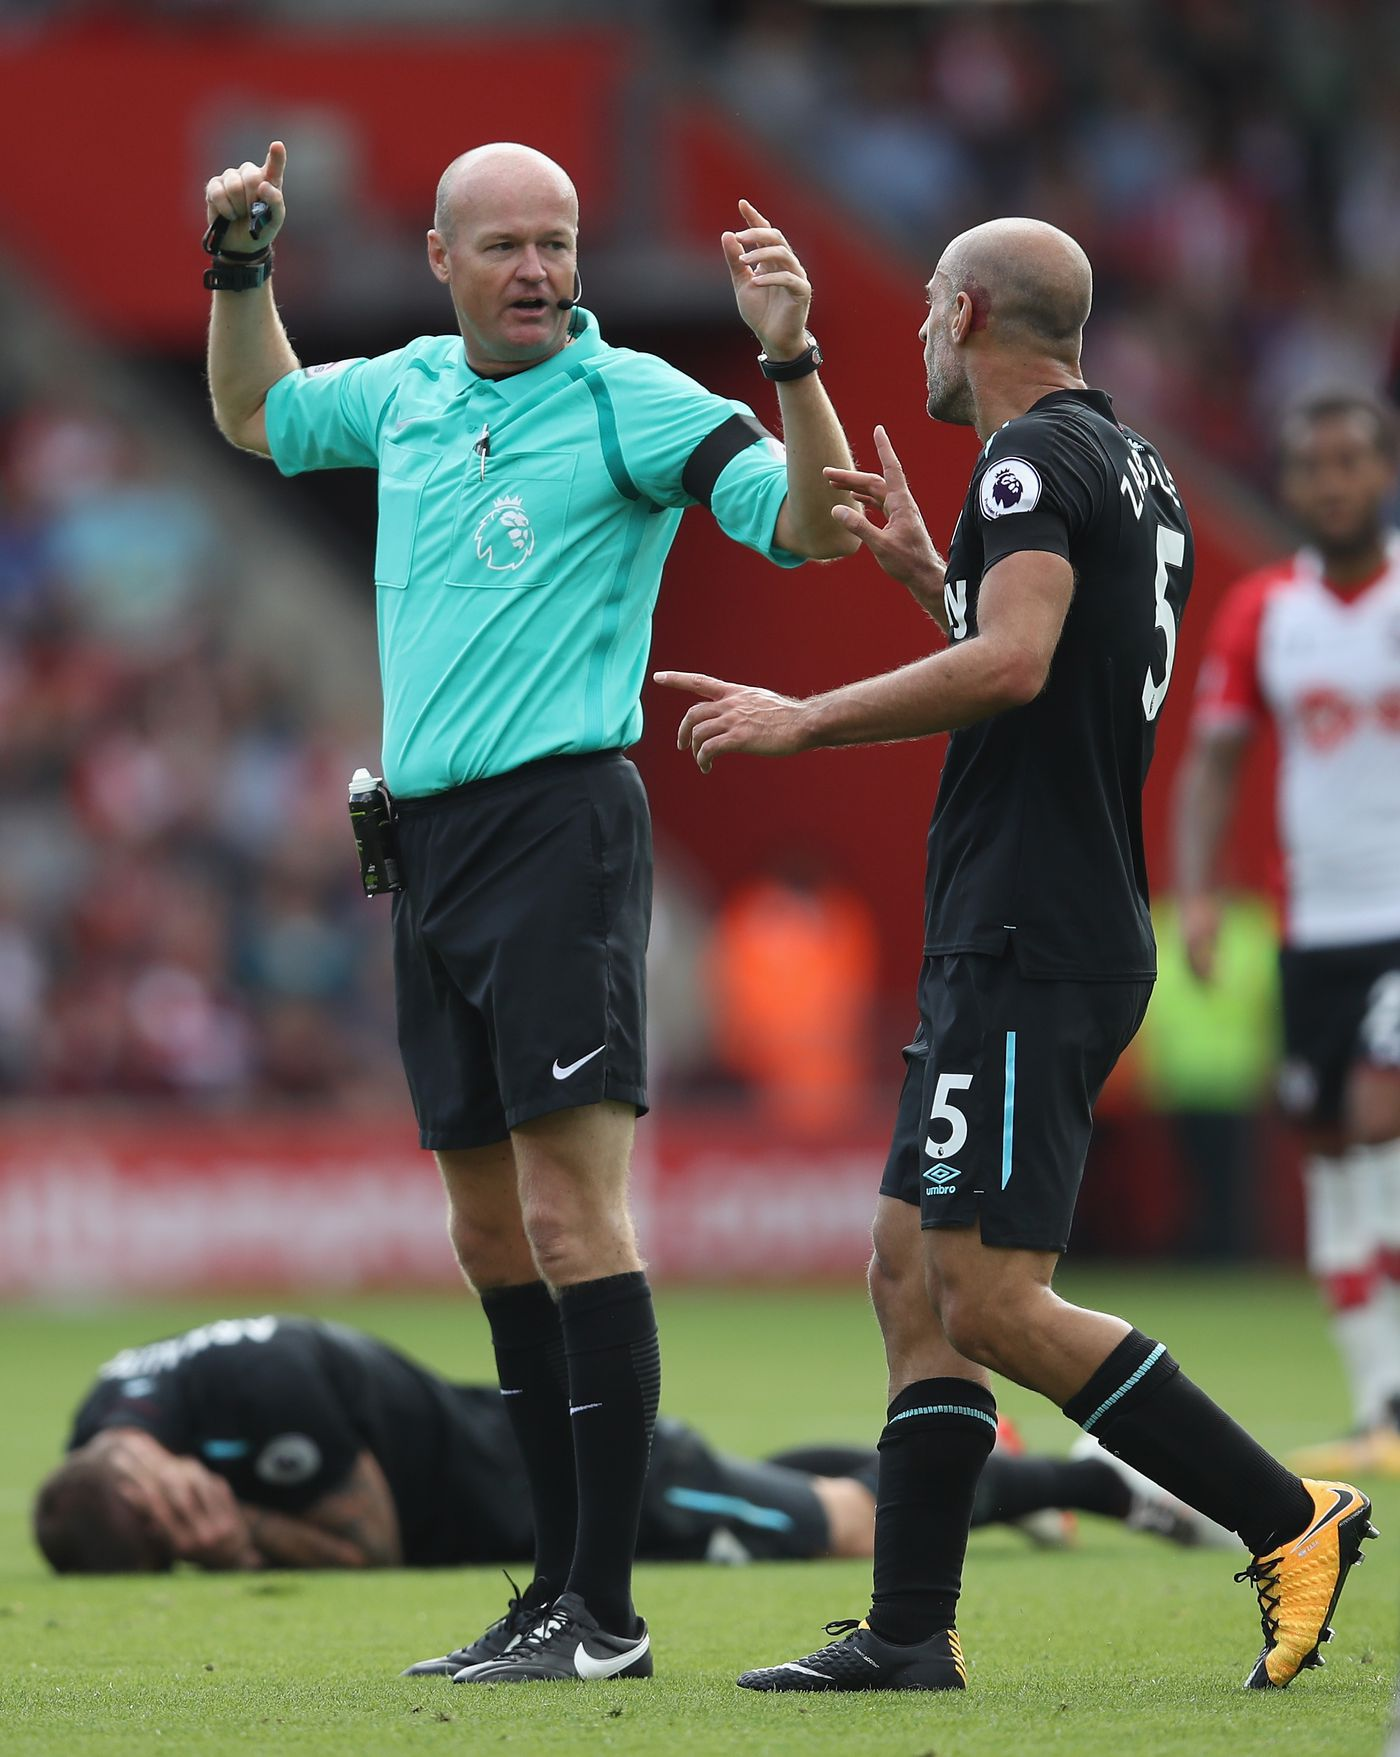 Five Things We Learned: Southampton 3-2 West Ham United - Brace The